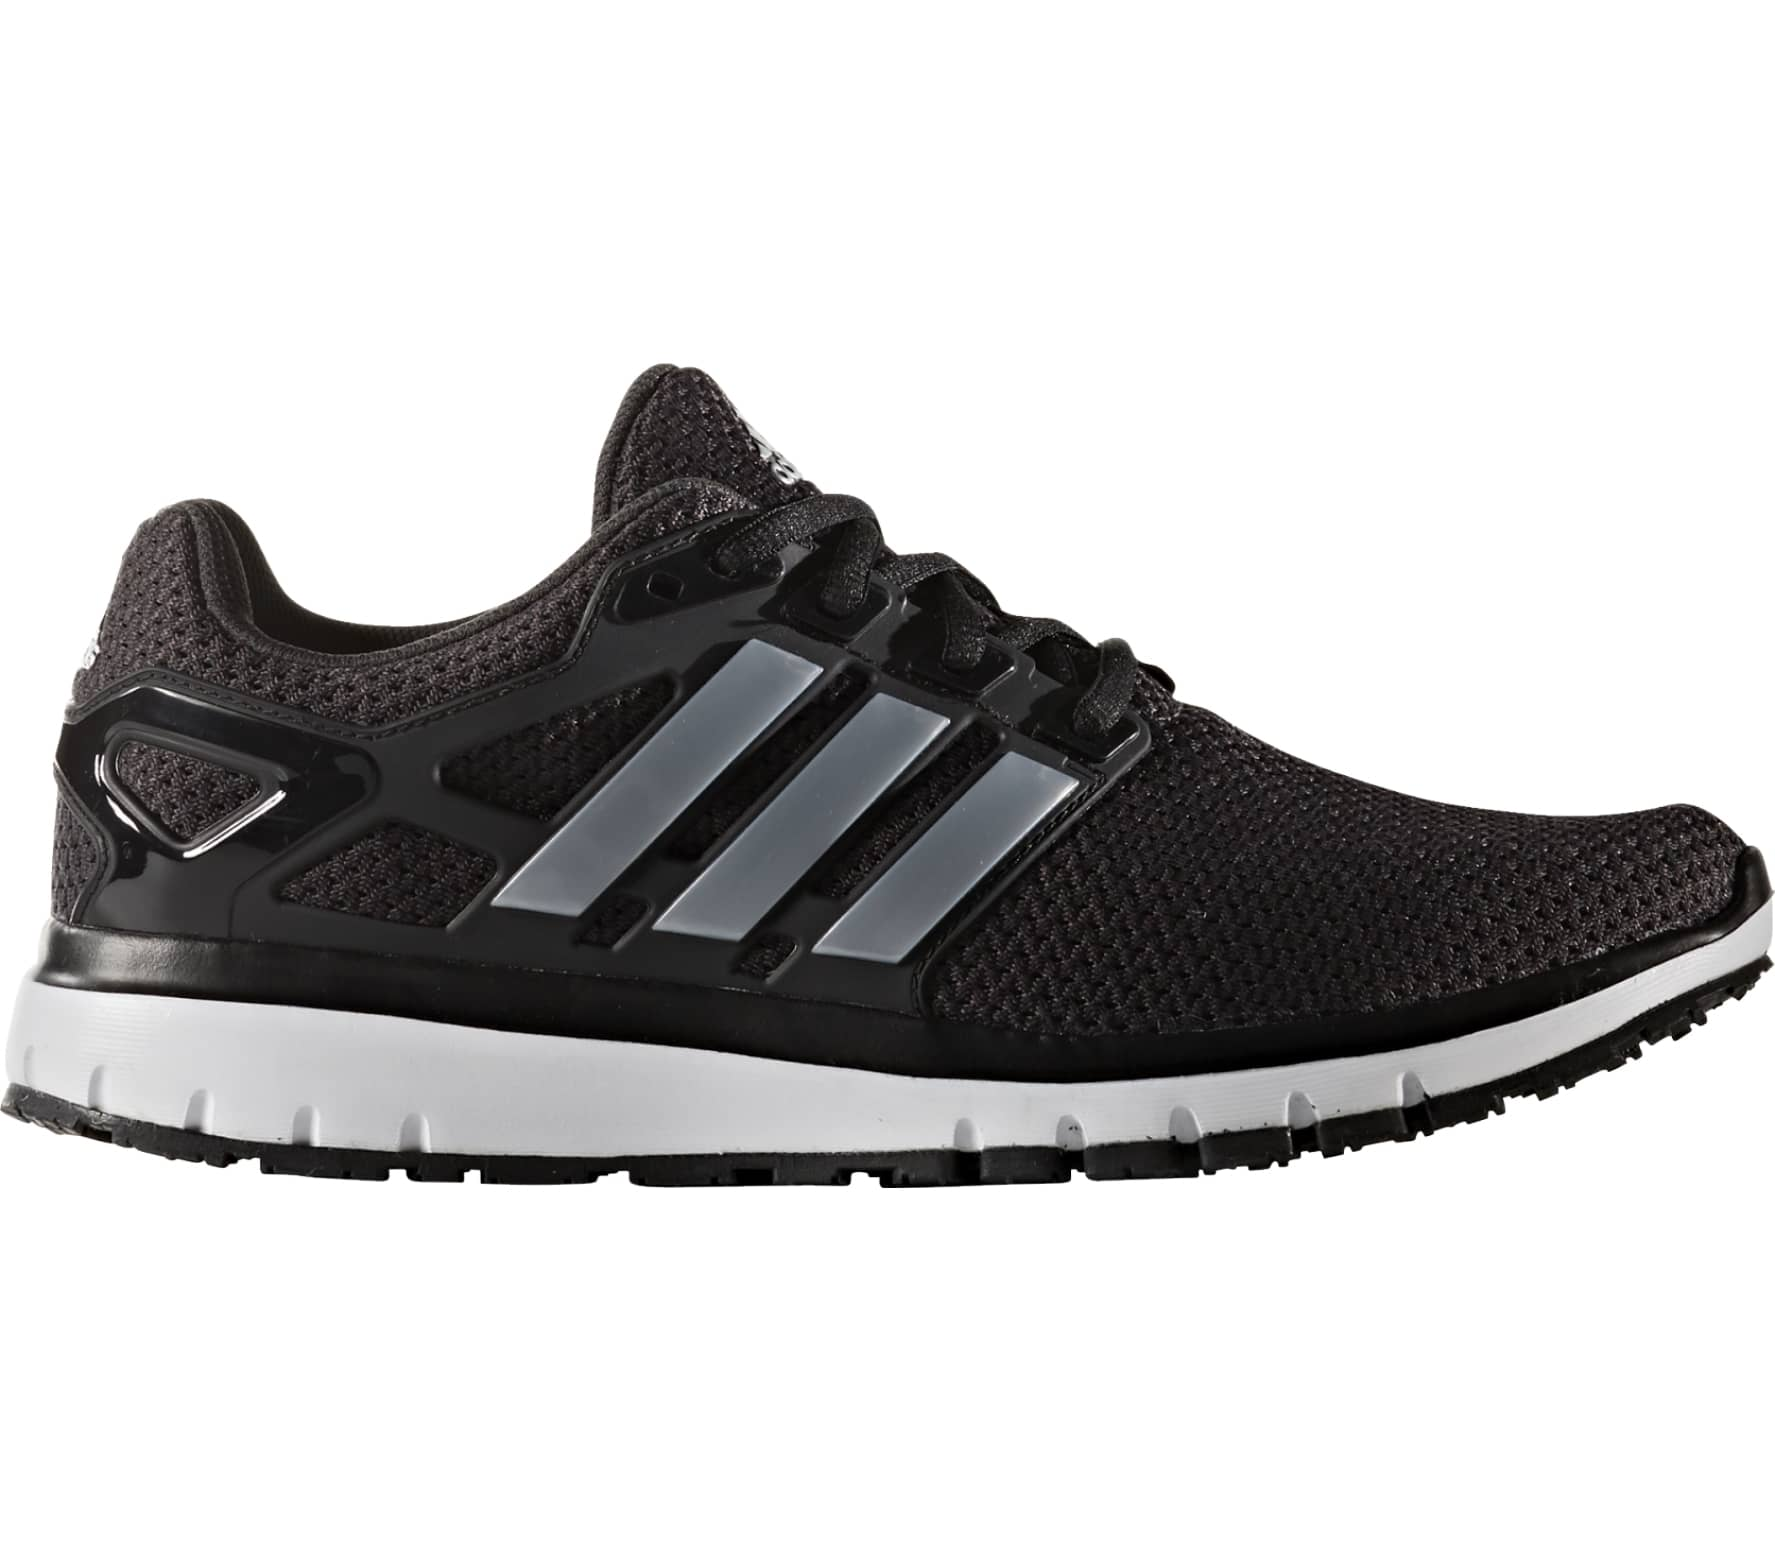 reputable site e4cb2 eb8be Adidas - Energy Cloud WTC men s running shoes (black silver)